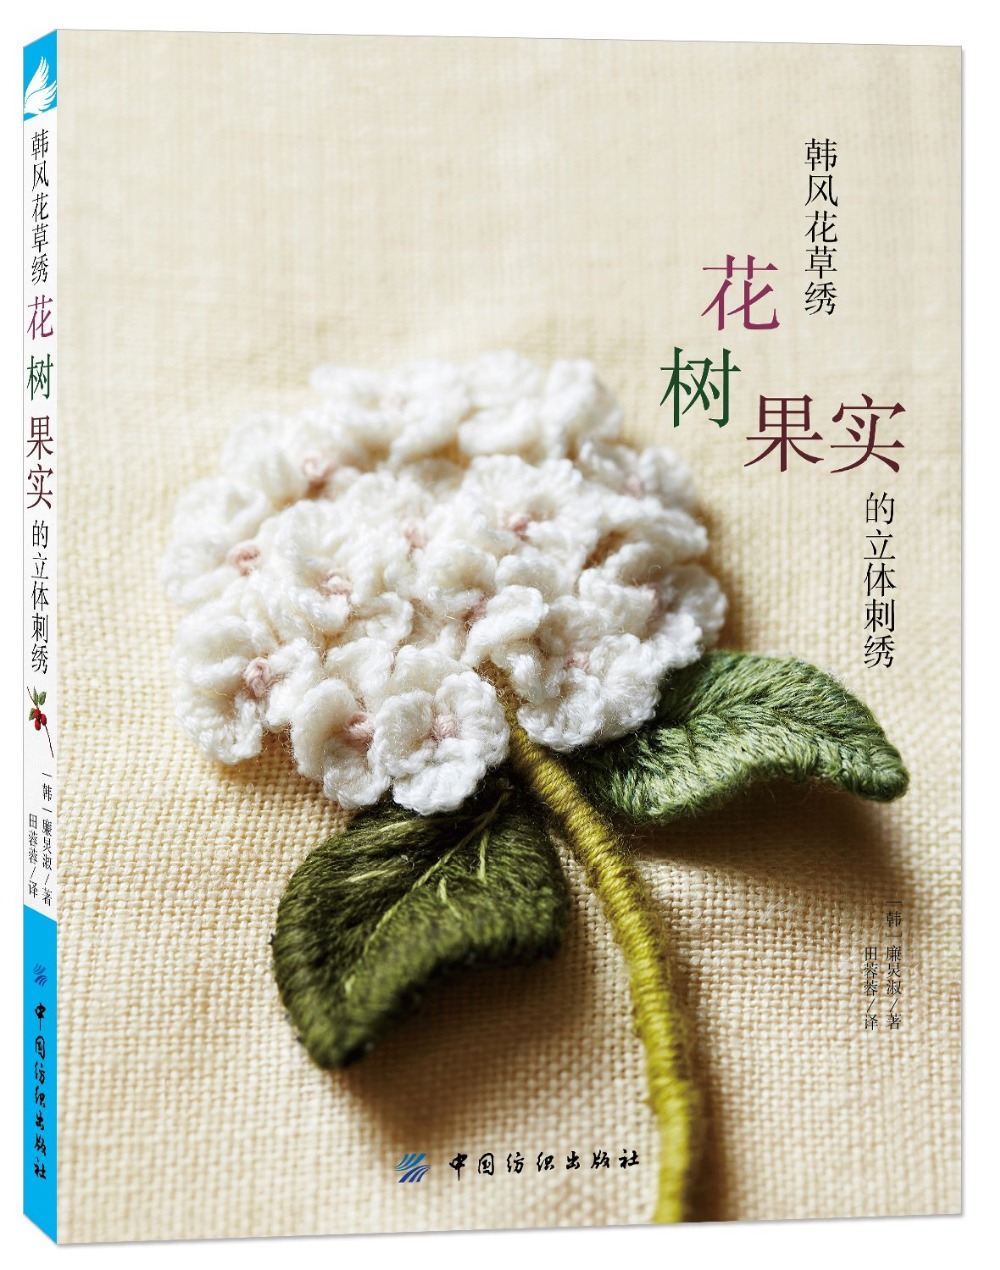 A three-dimensional embroidery of flowers, trees, and fruits / Chinese embroidery Handmade Art Design Book coloring of trees